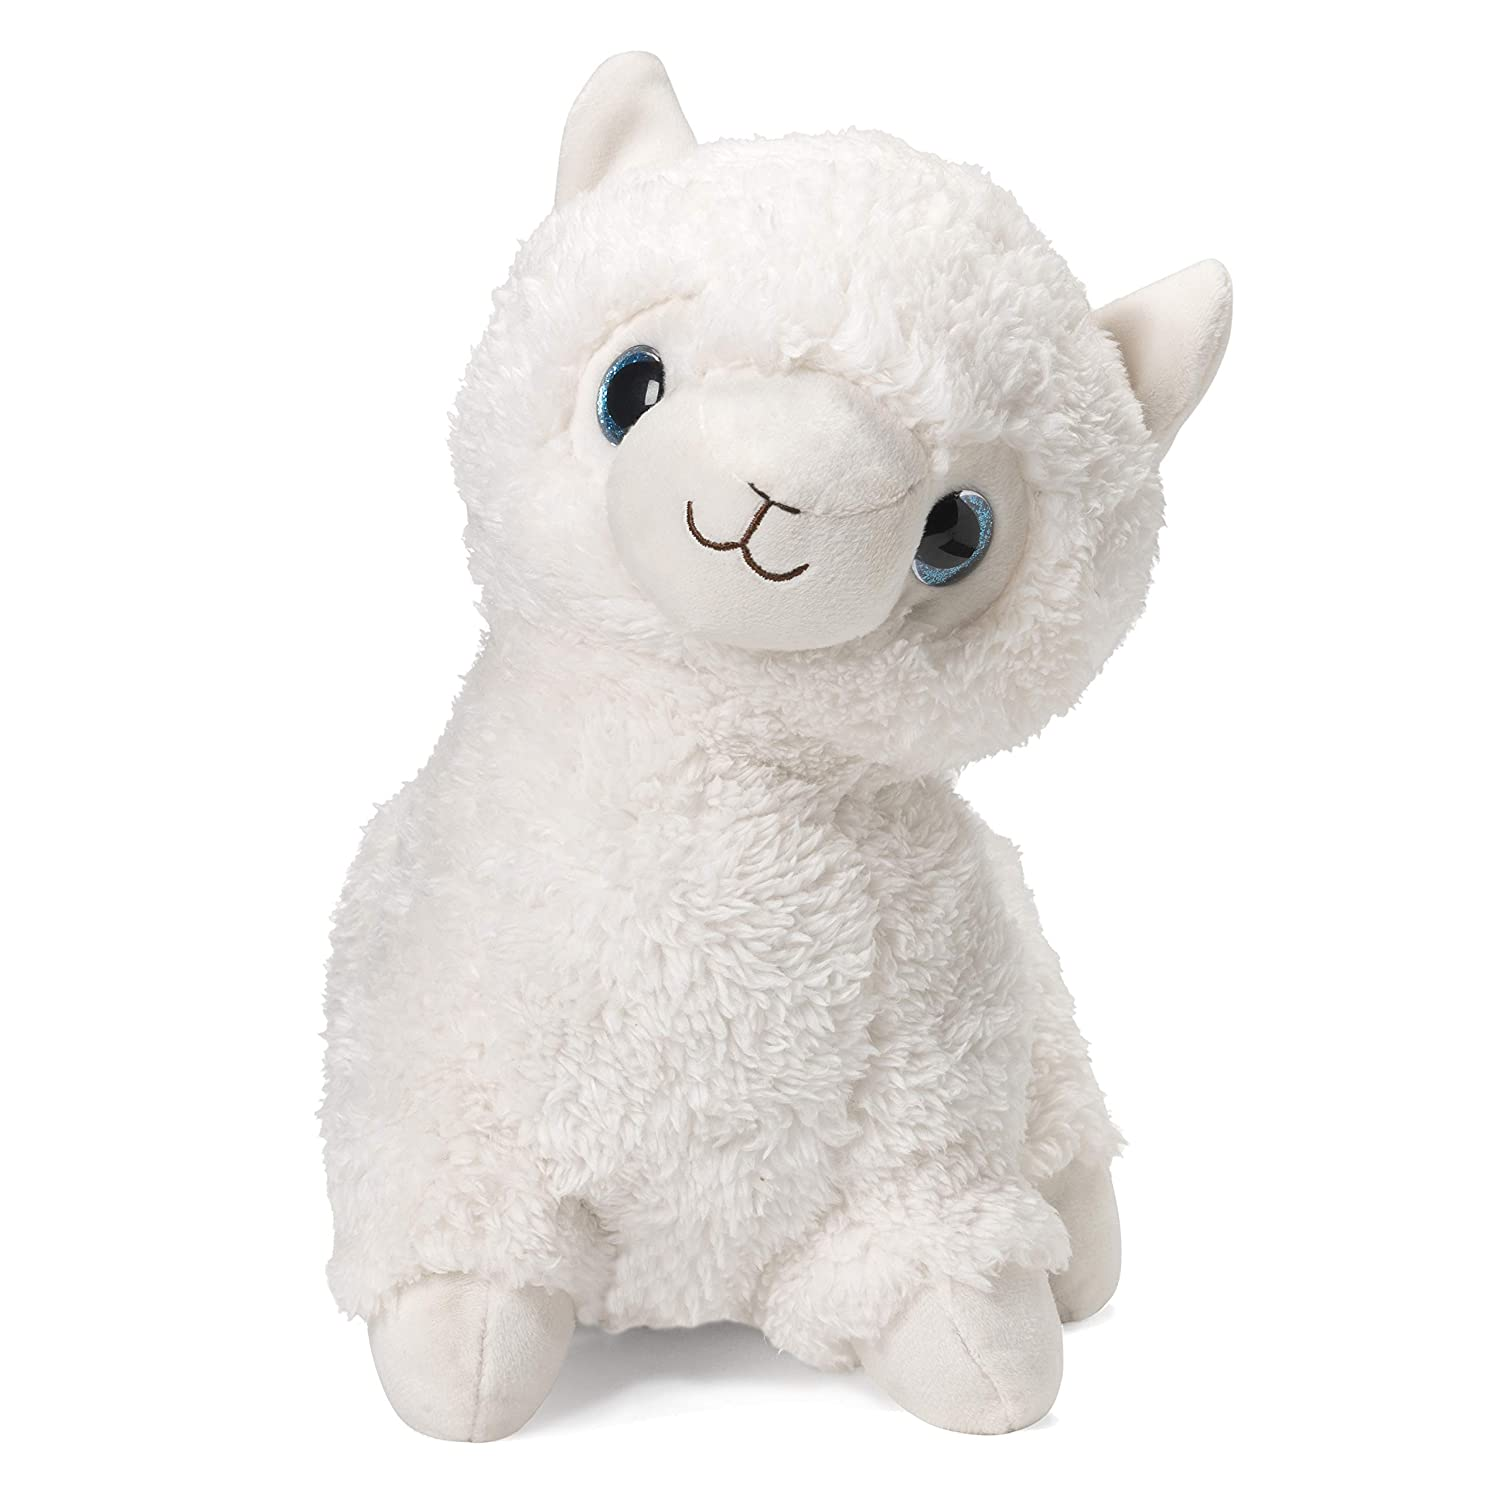 "Intelex Warmies Microwavable French Lavender Scented Plush, Llama Warmies, White, 14"" X 8"" X 4"""